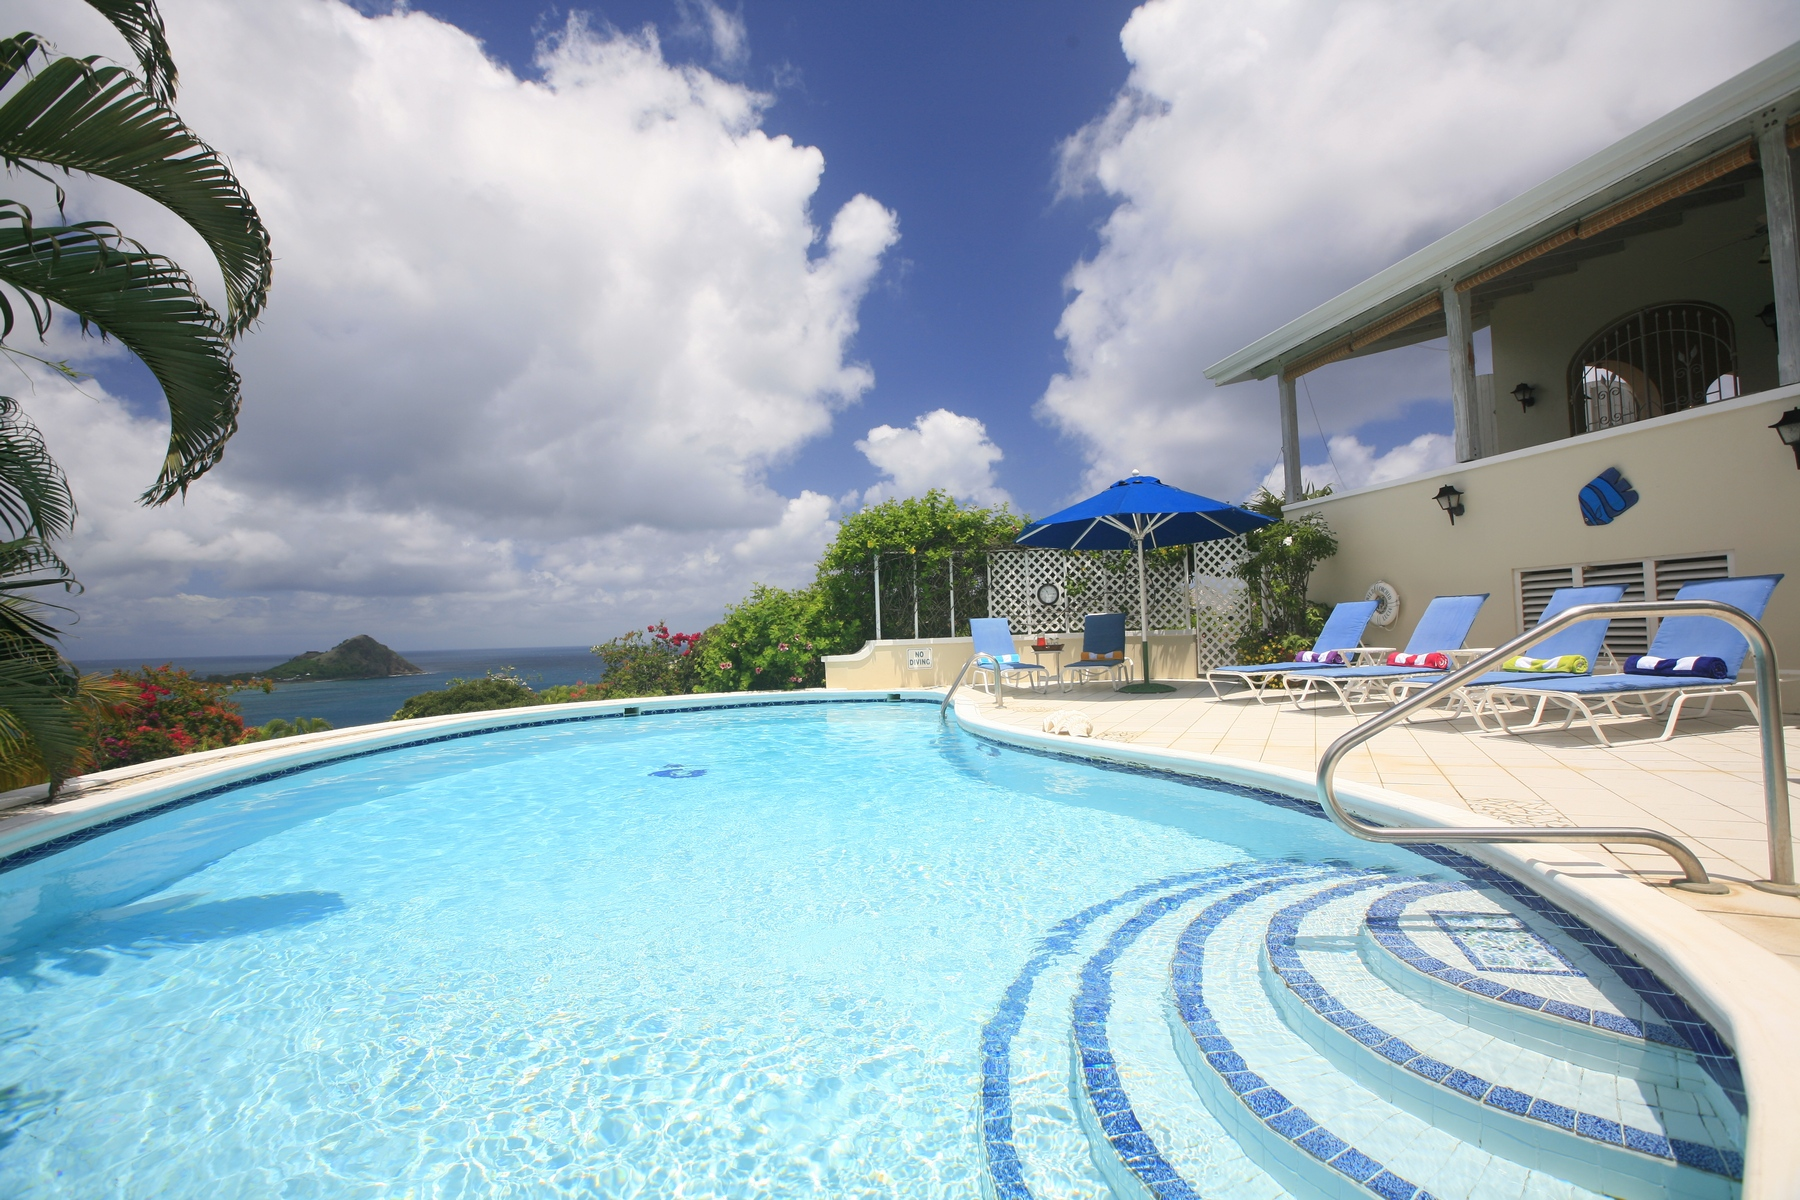 Single Family Homes for Sale at 3-5 Bedroom Ocean View Villa, Cap Estate Gros Islet, Gros-Islet St. Lucia